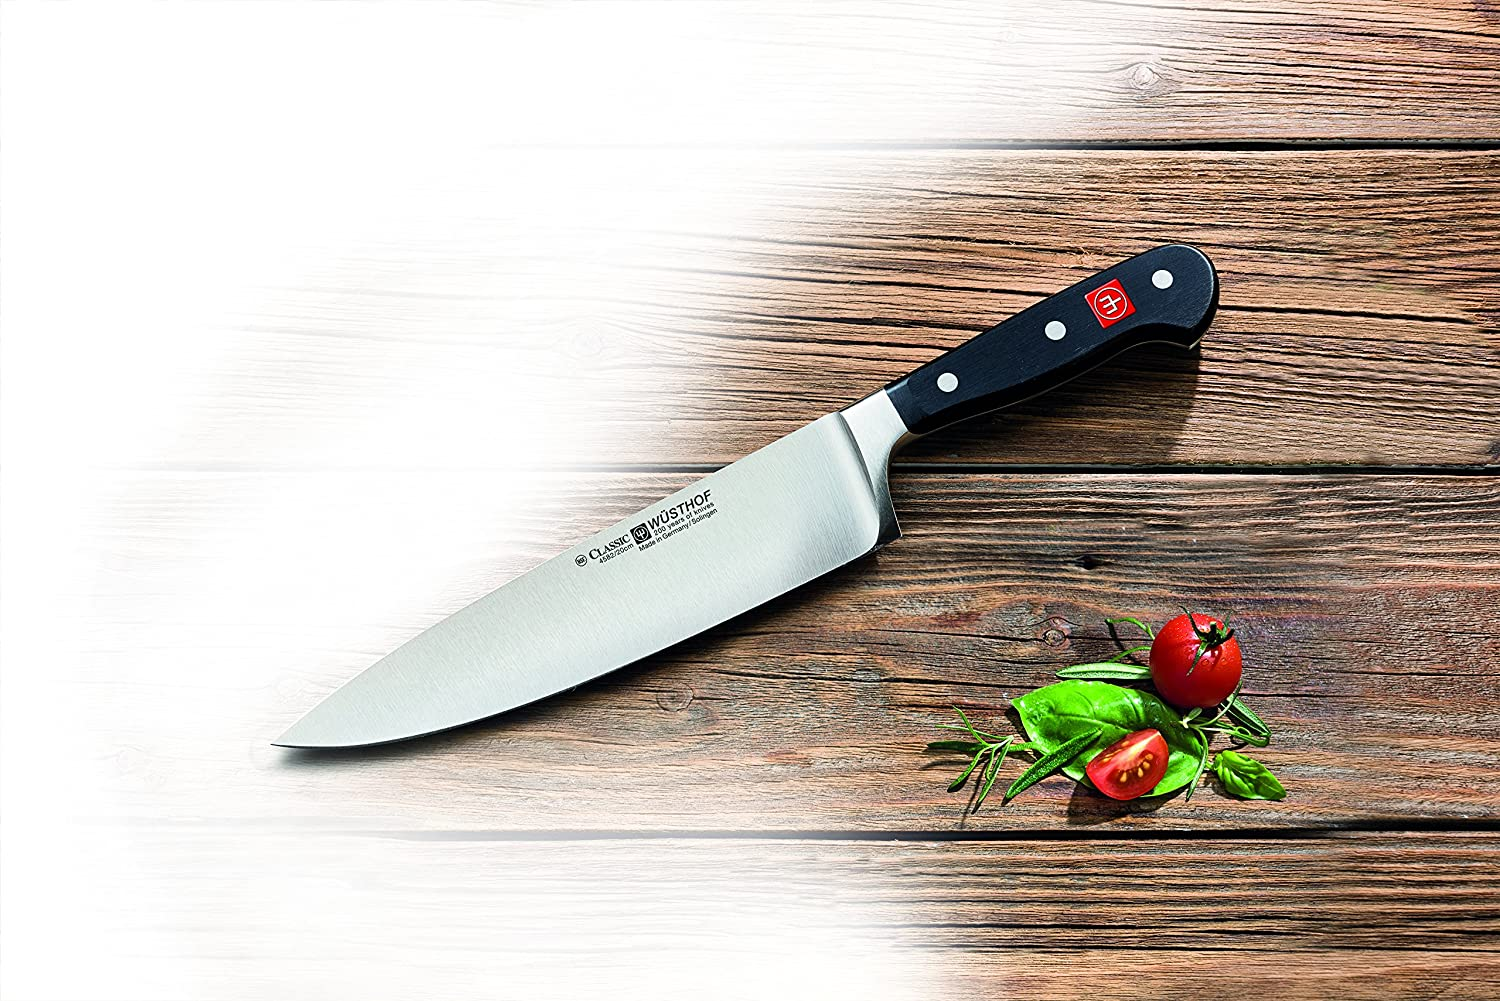 wusthof classic chef knife review